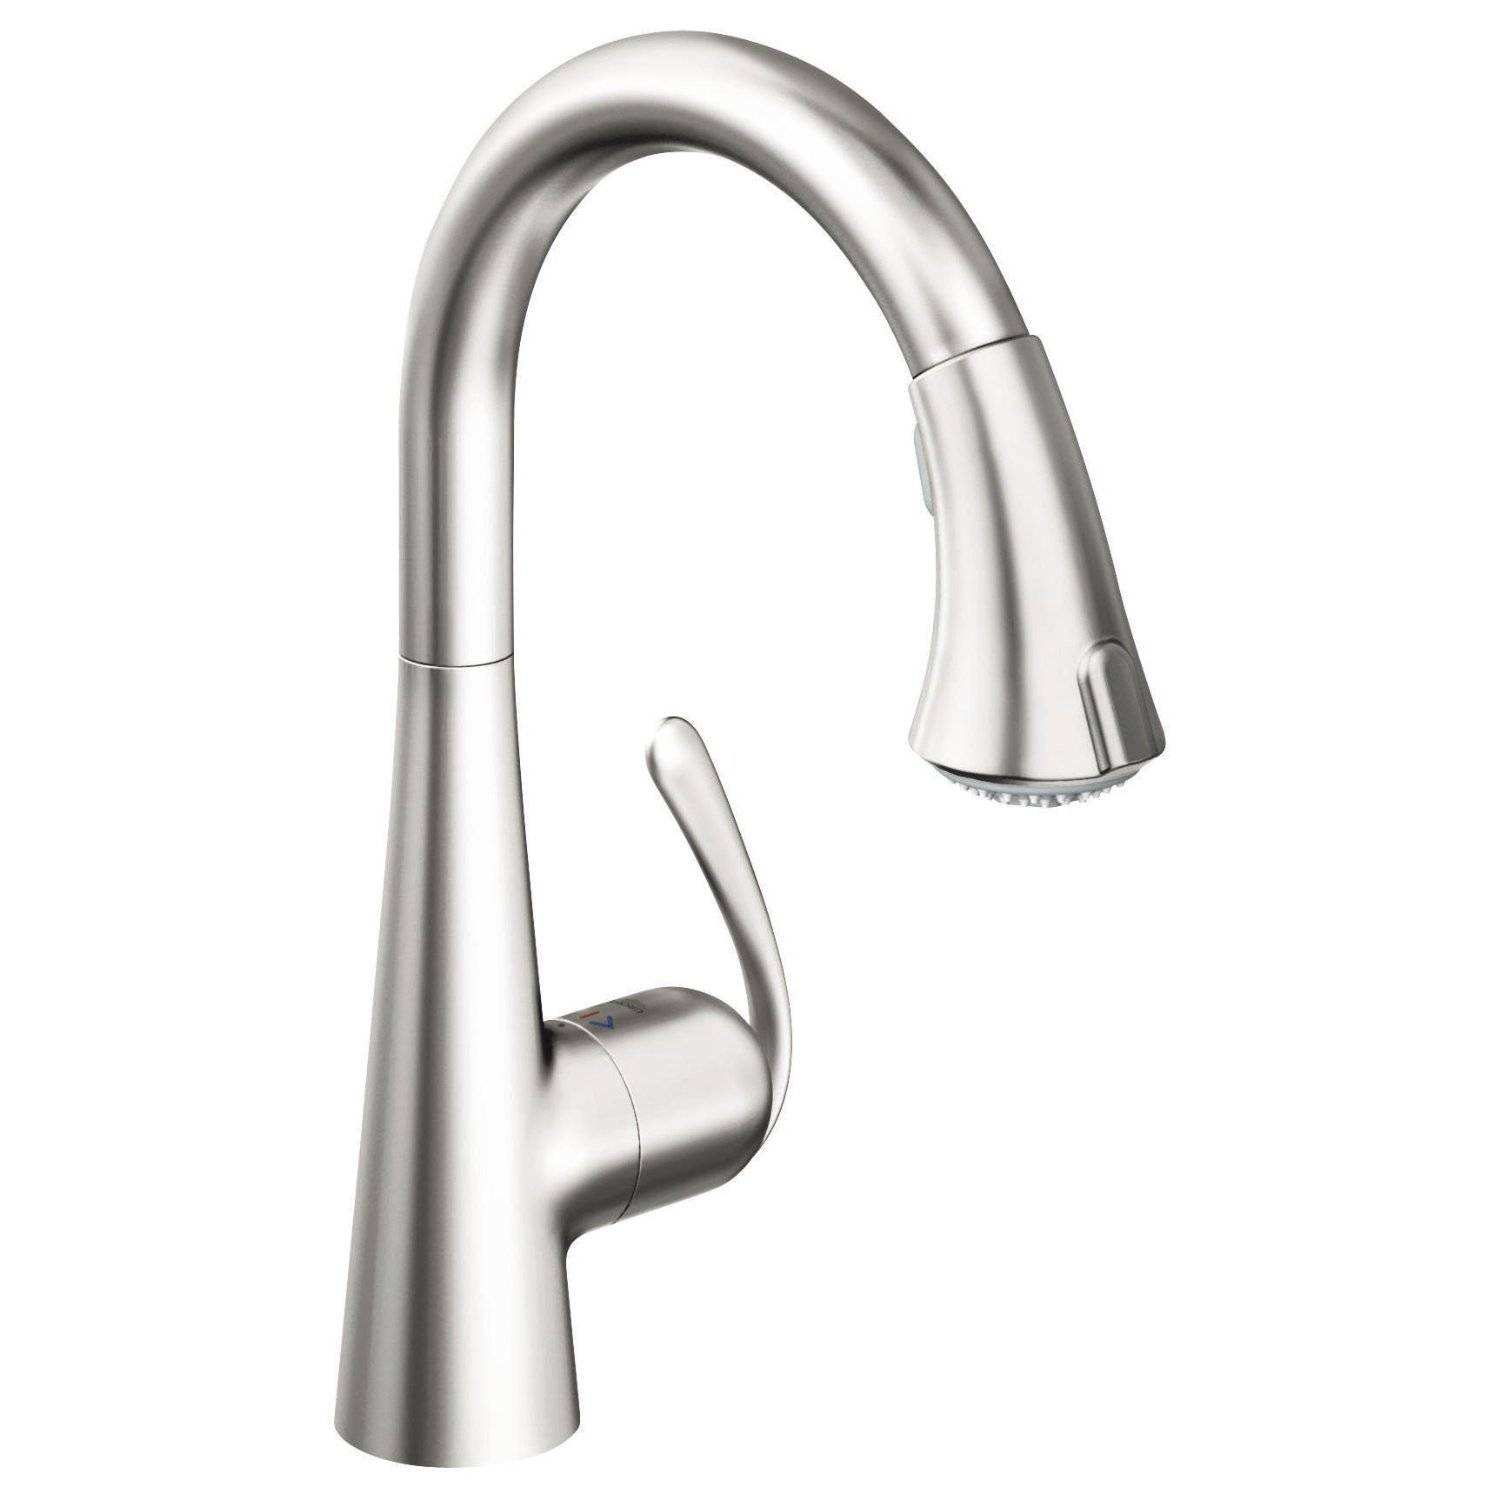 Hans Grohe Hansgrohe Kitchen Faucet Hose